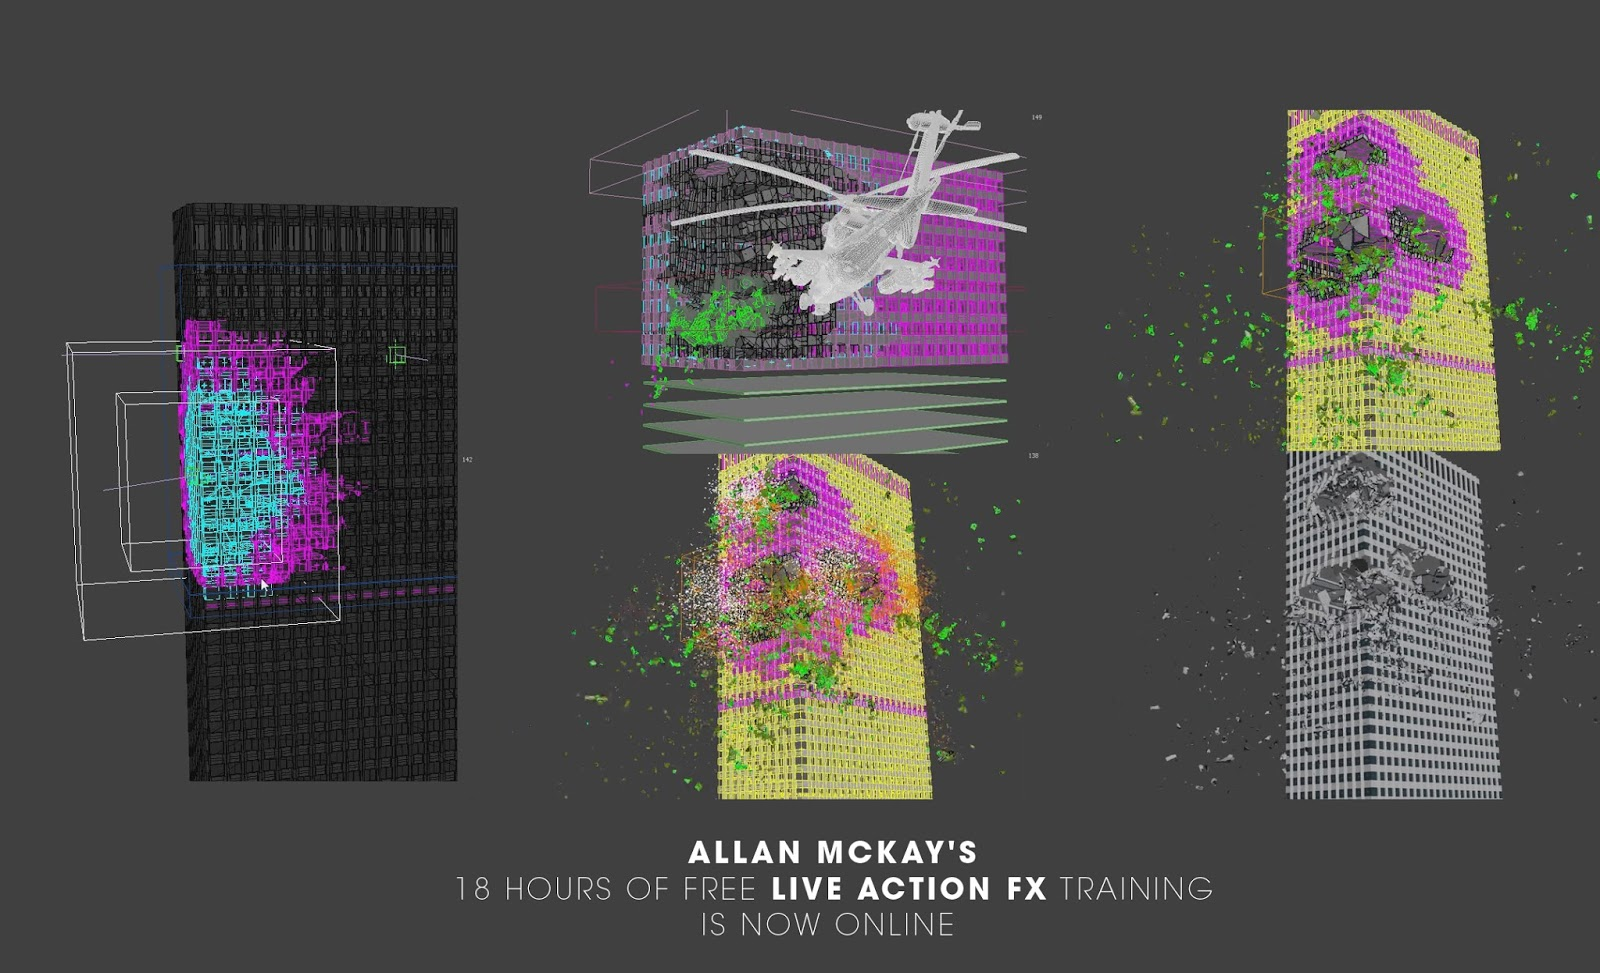 Allan Mckay S 18 Hours Of Free Live Action Fx Training Is Now Online